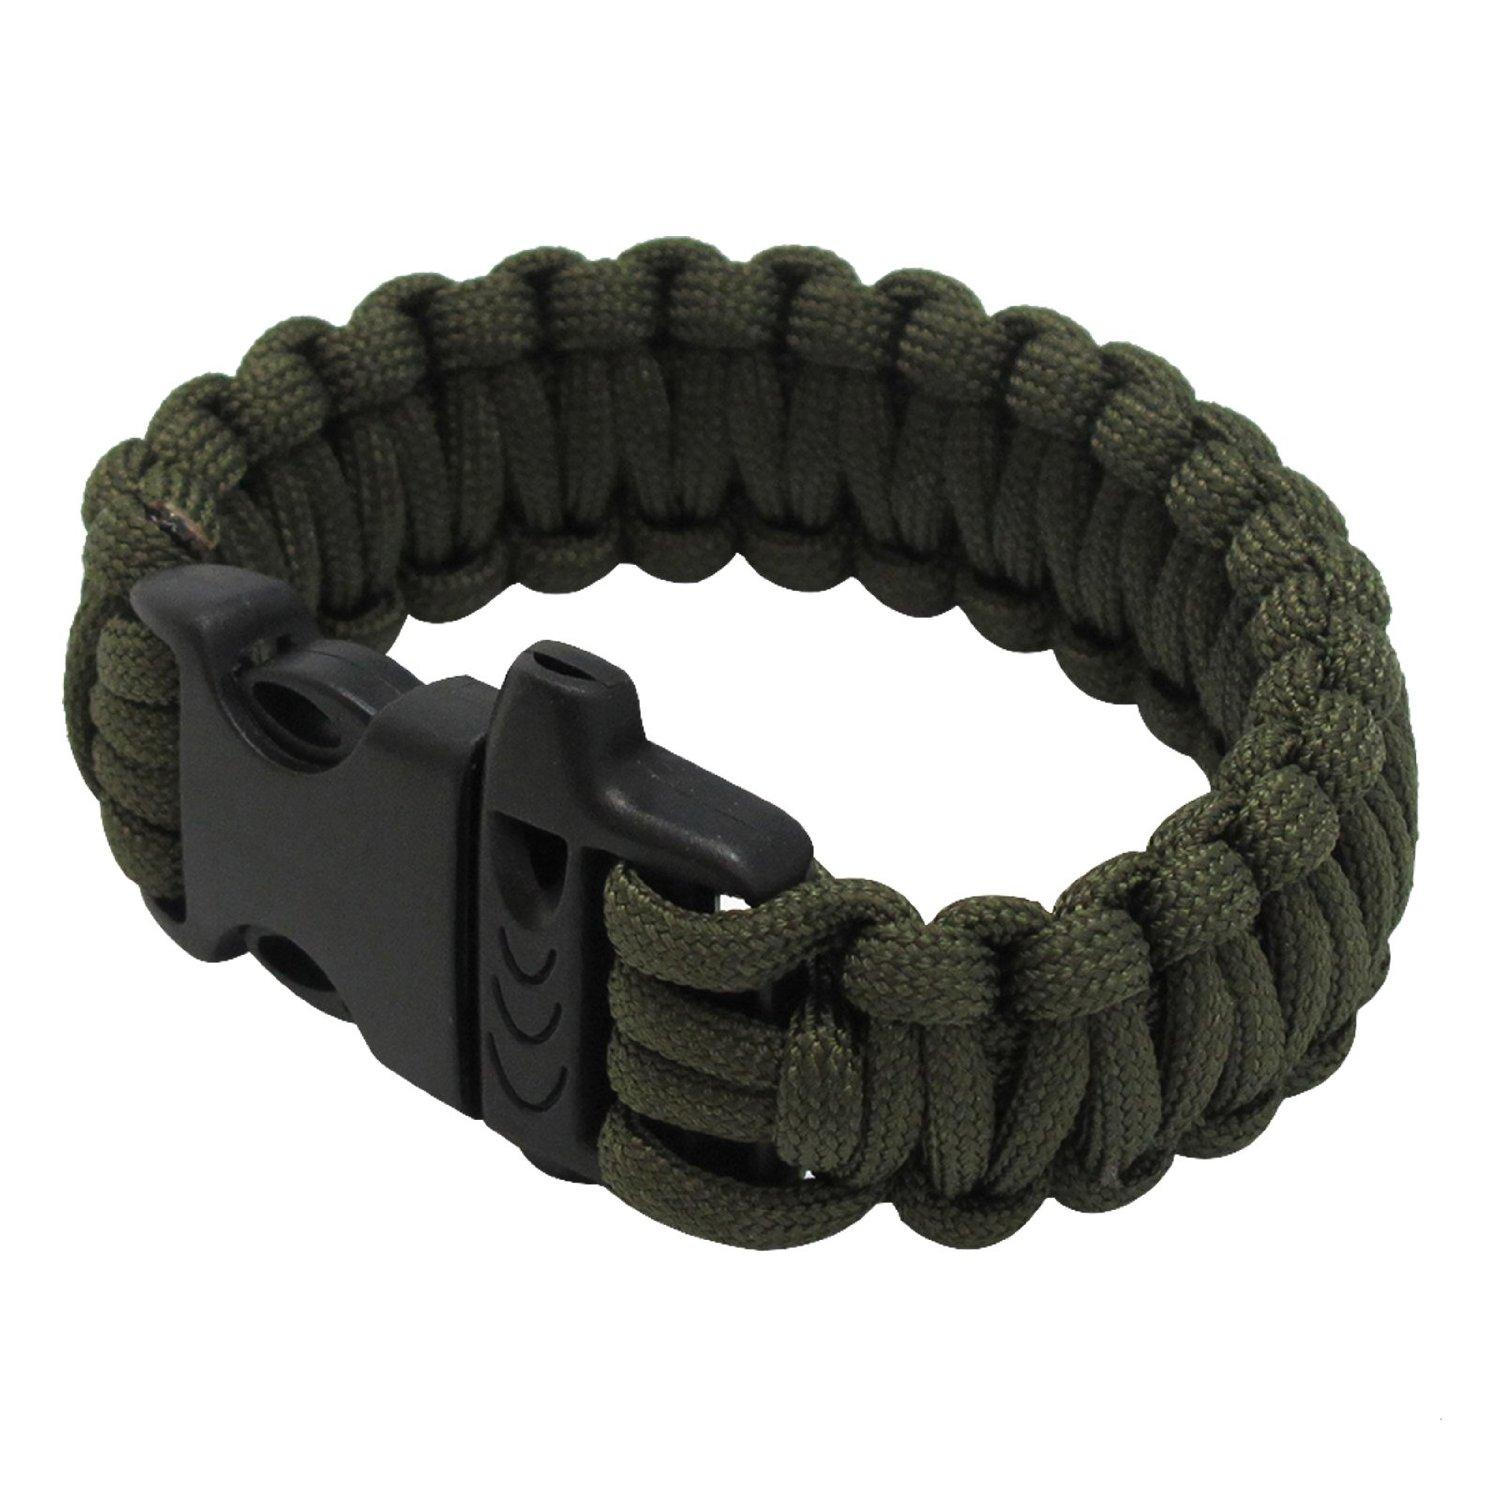 multifunctional military paracord bracelet outdoor survival kit